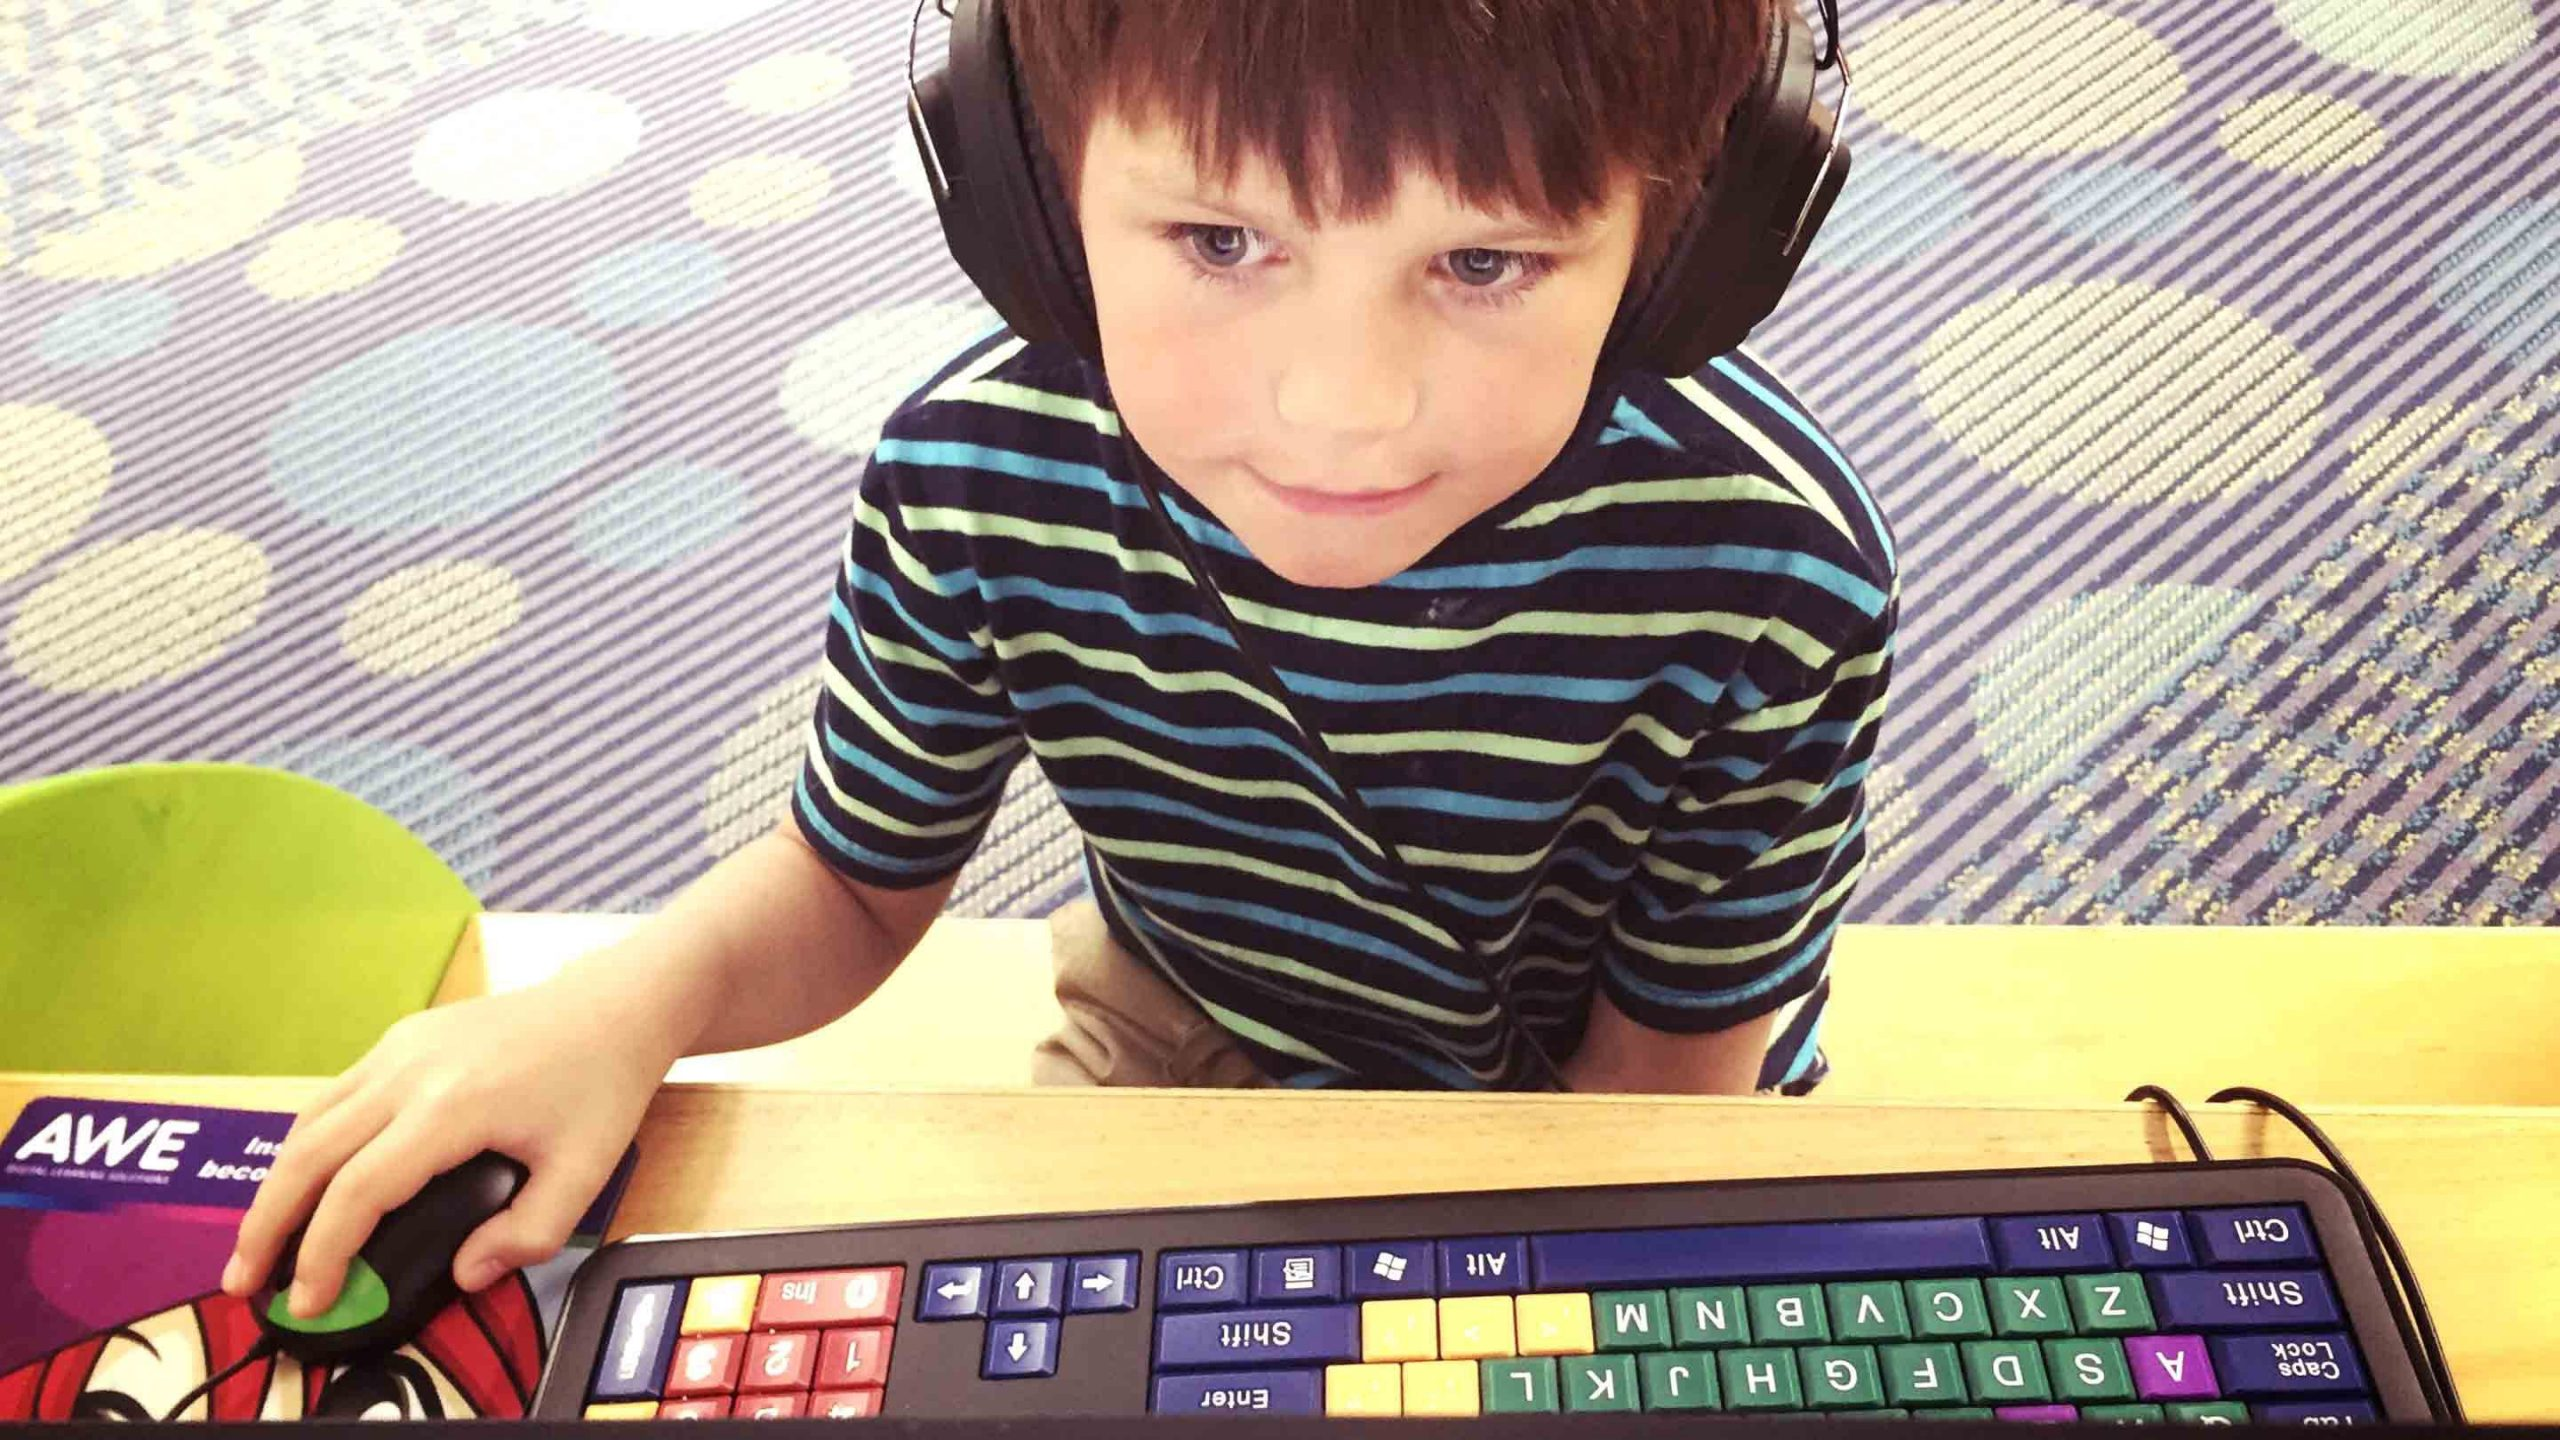 Assistive technology equipment for youth